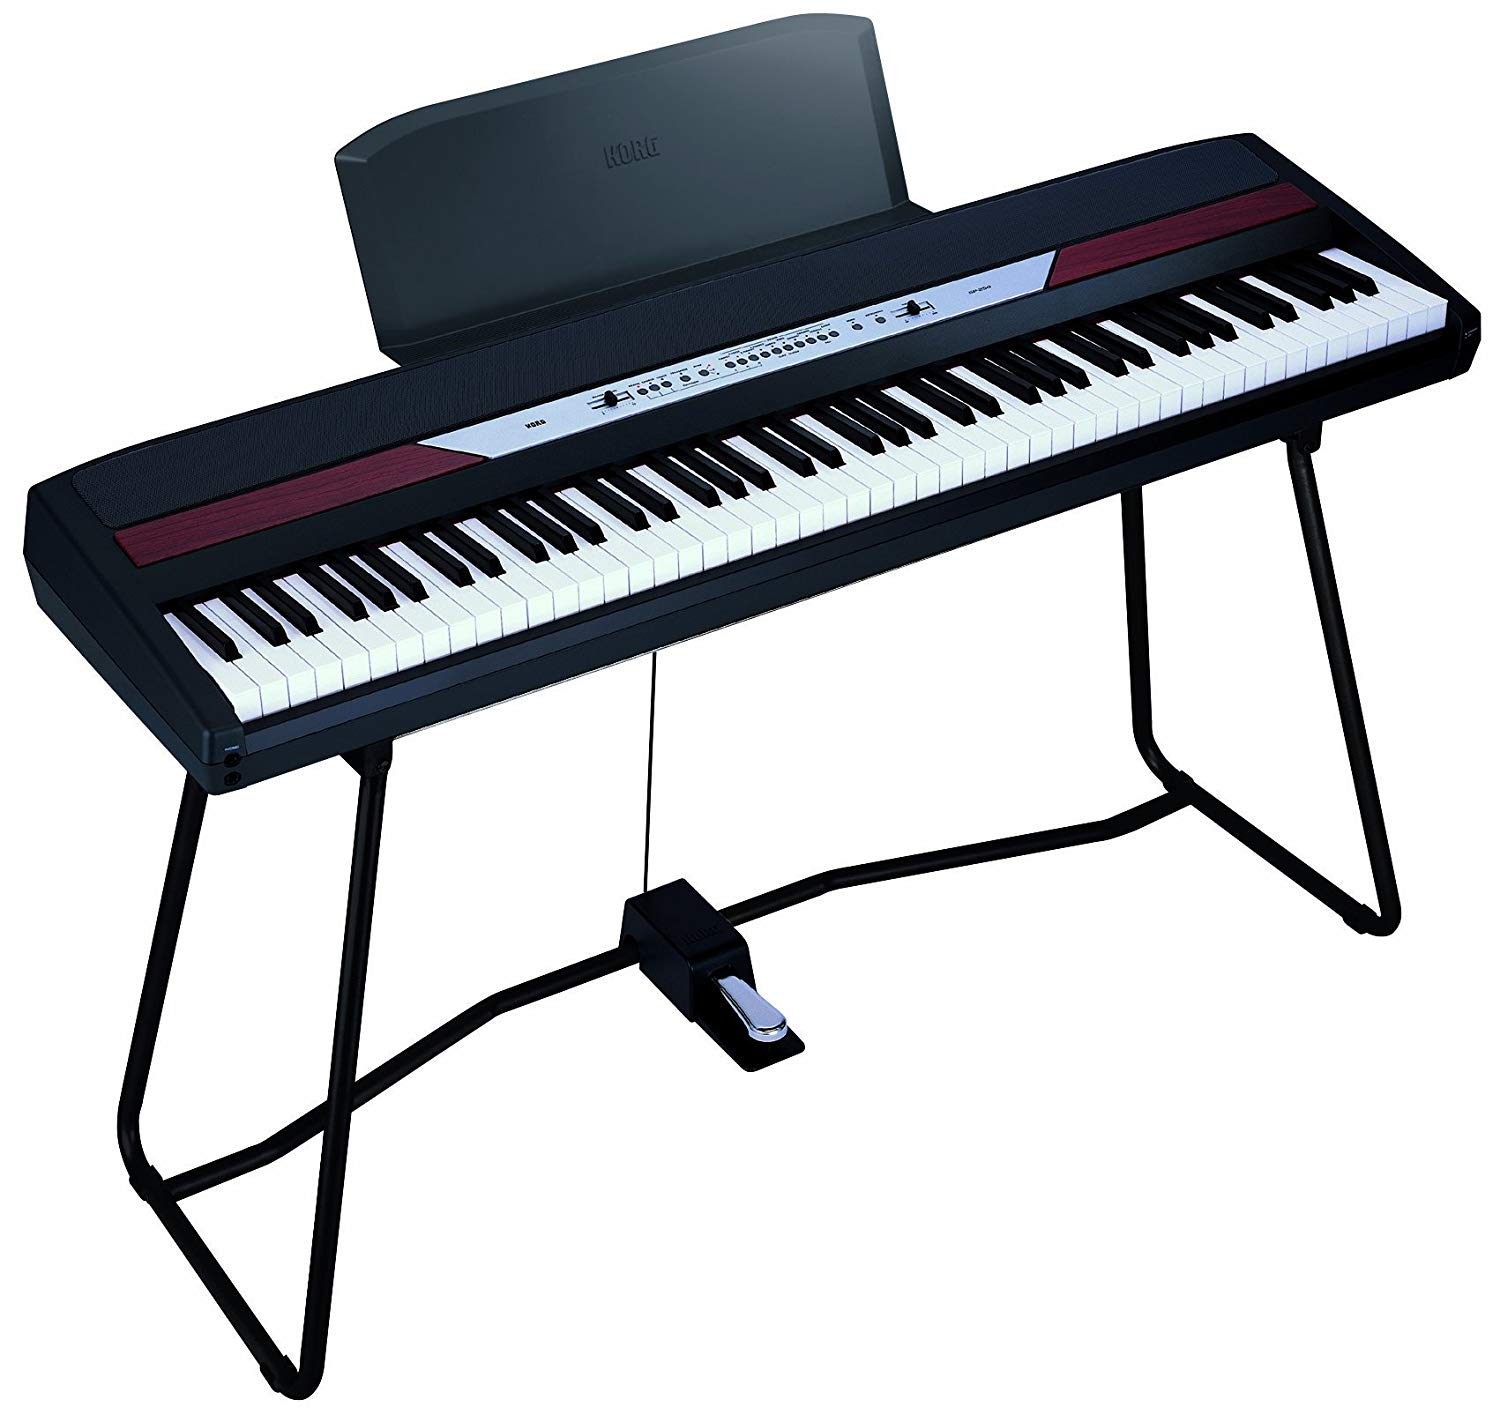 Korg SP-250 Digital Piano Review 2020